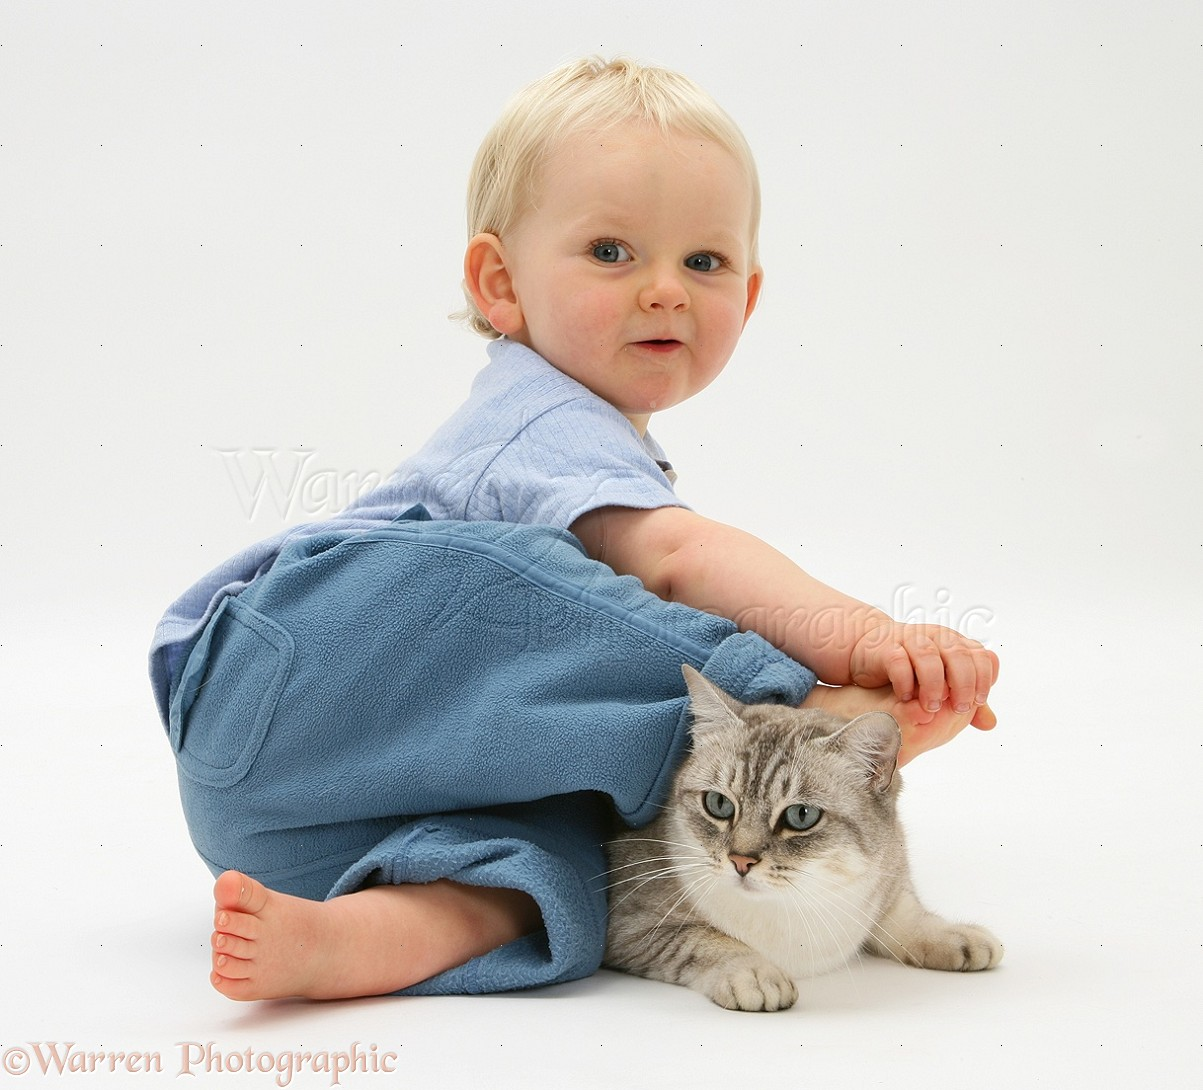 Http Www Warrenphotographic Co Uk 12718 Toddler With Bengal Cat